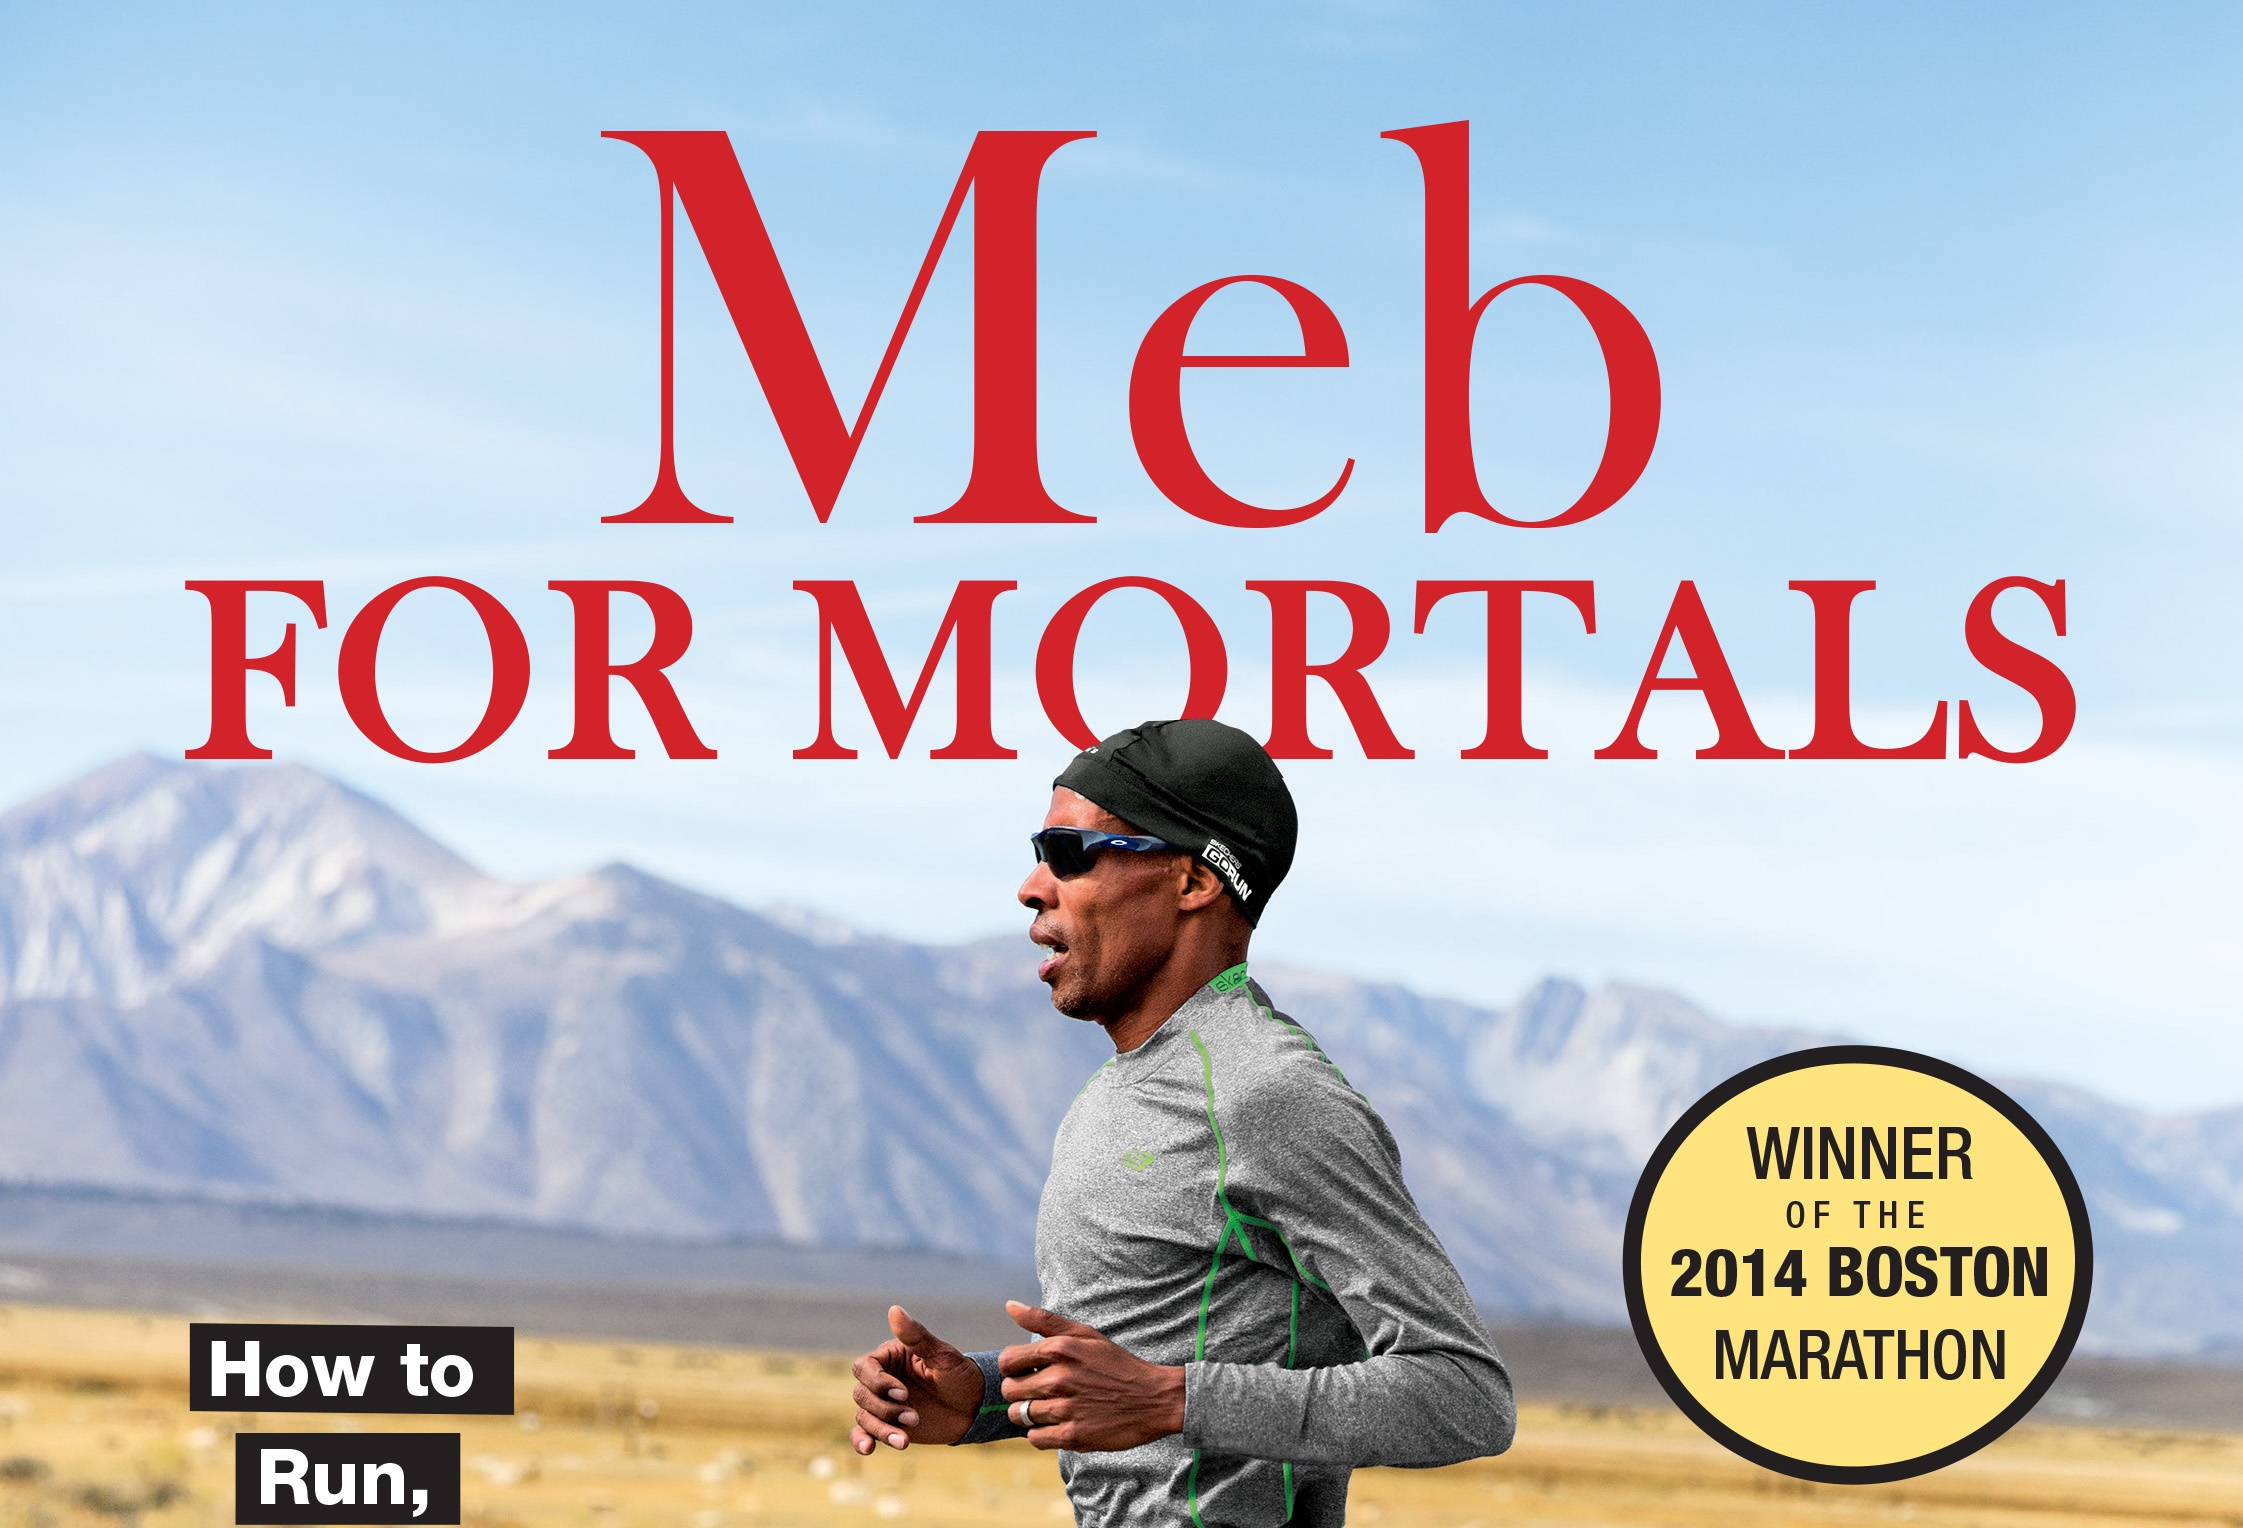 Meb-For-Mortals-Featured